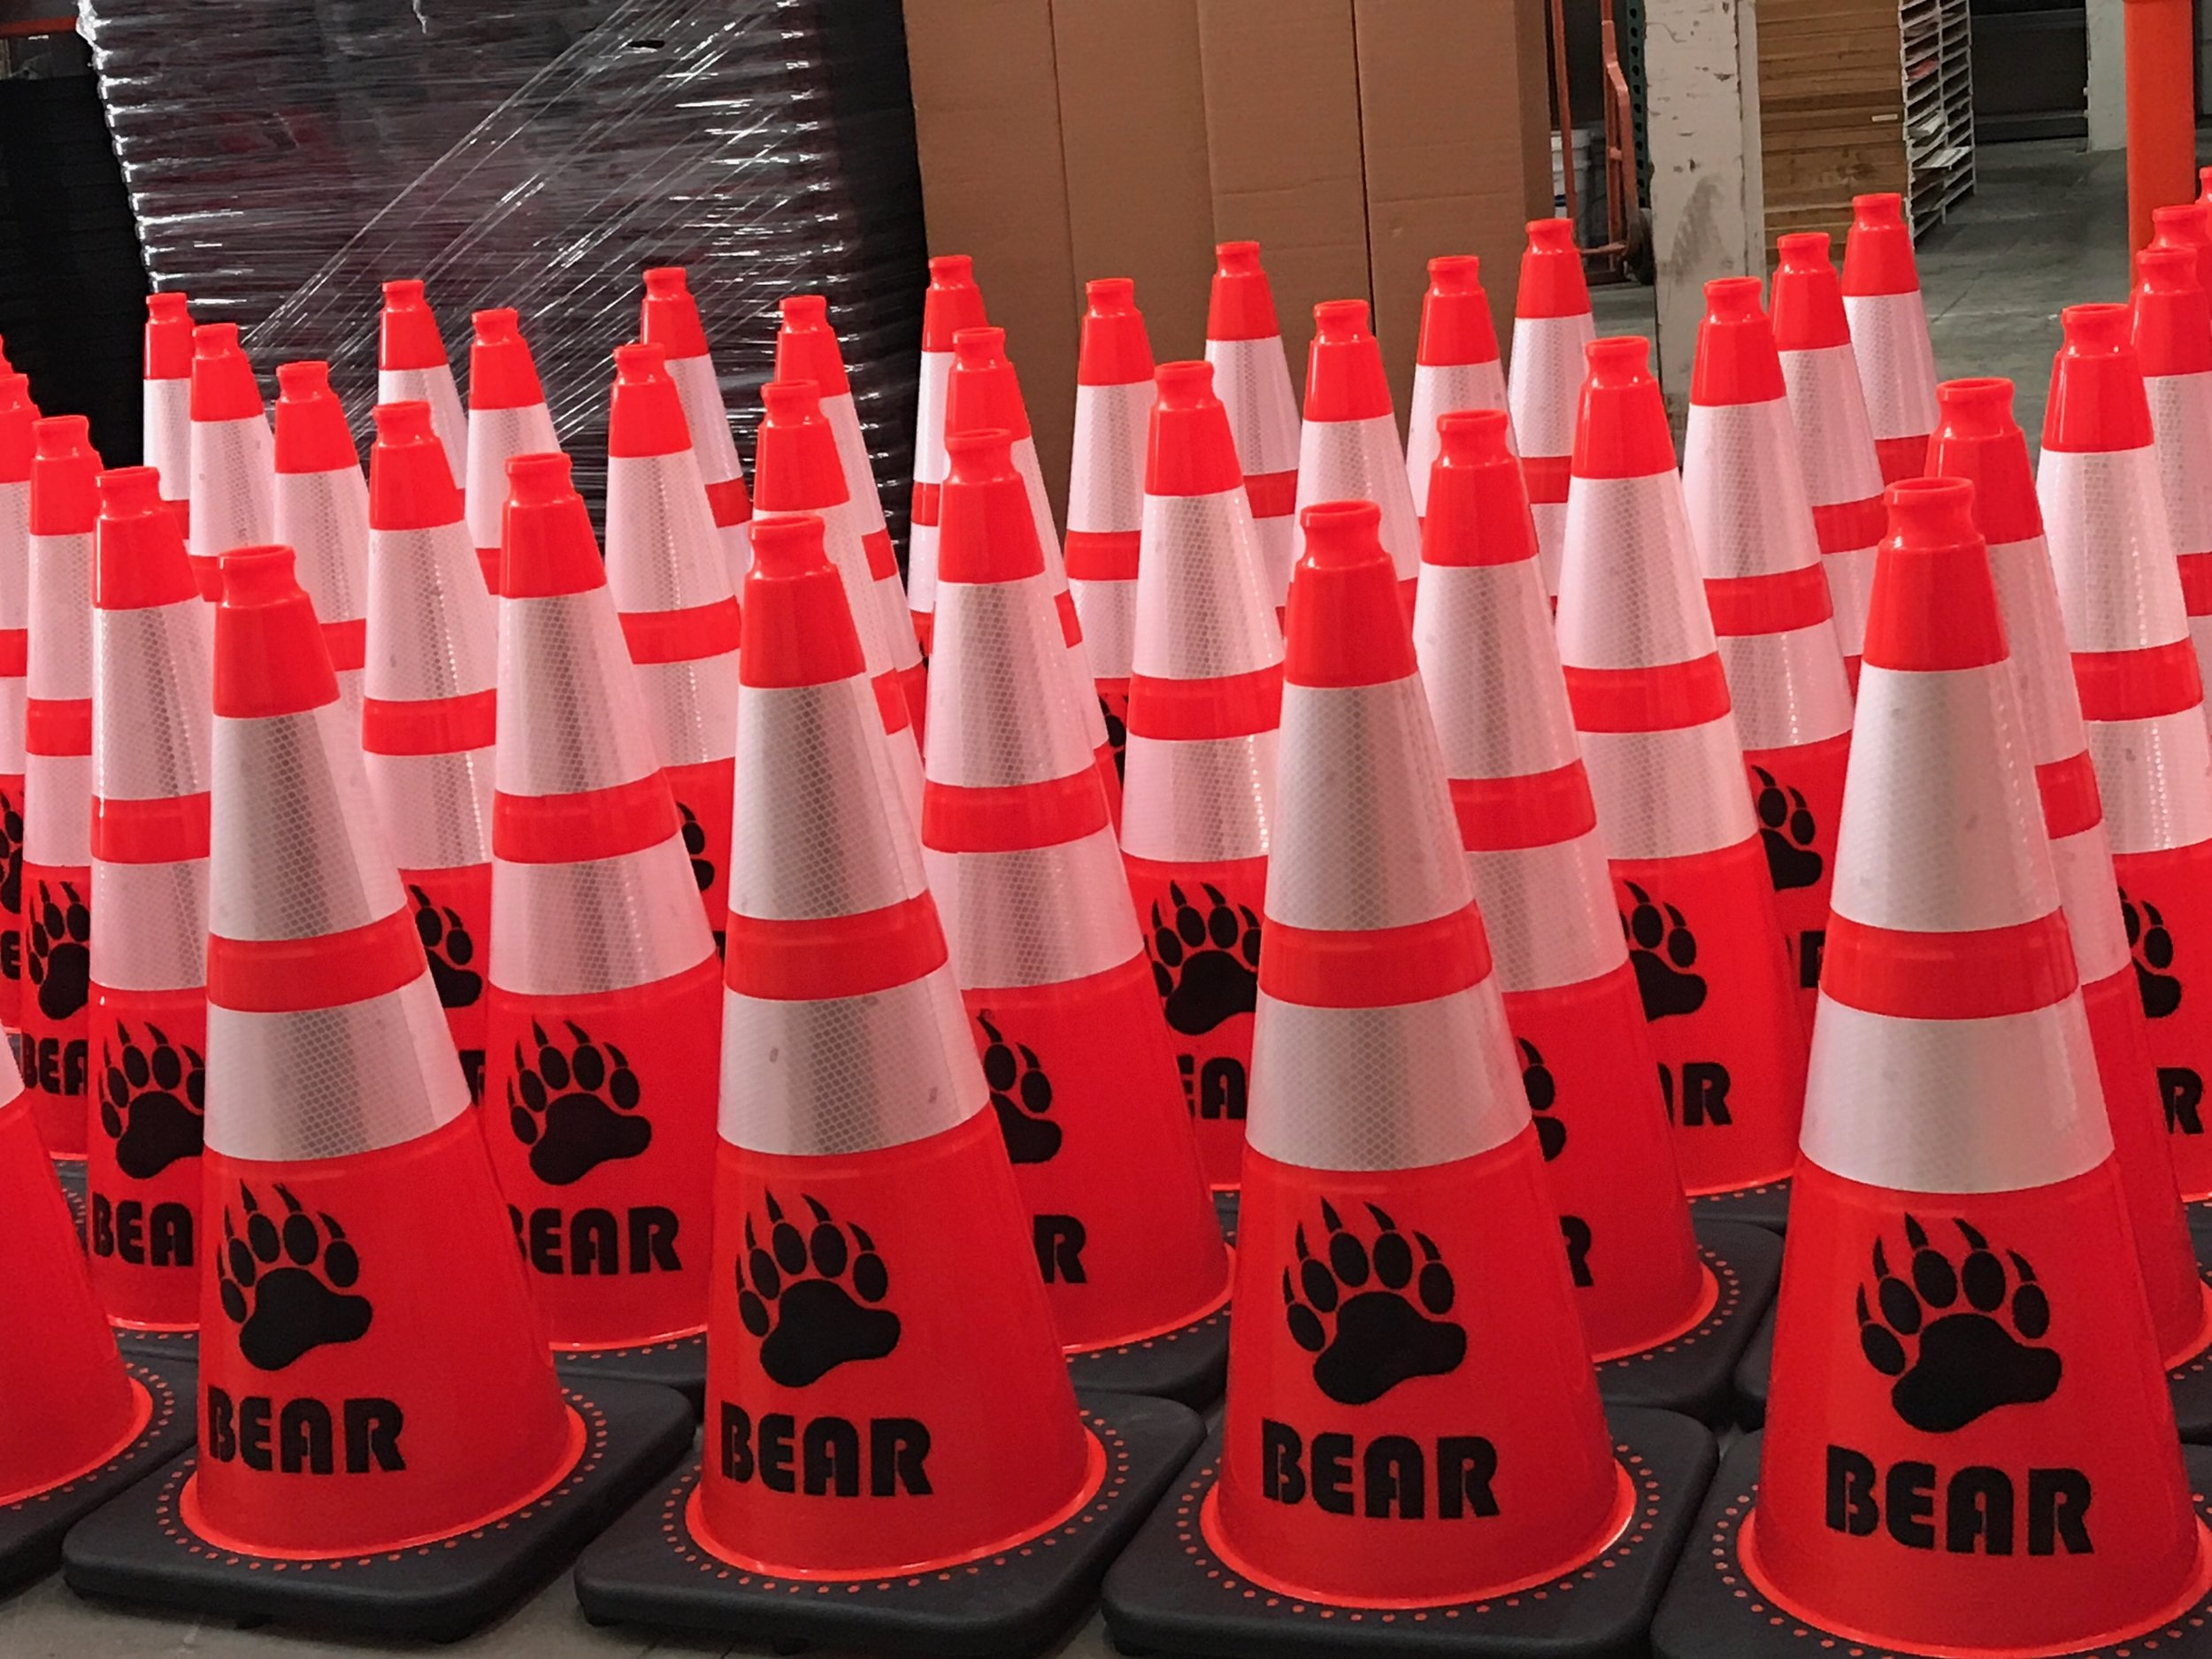 Bear Cones.jpeg